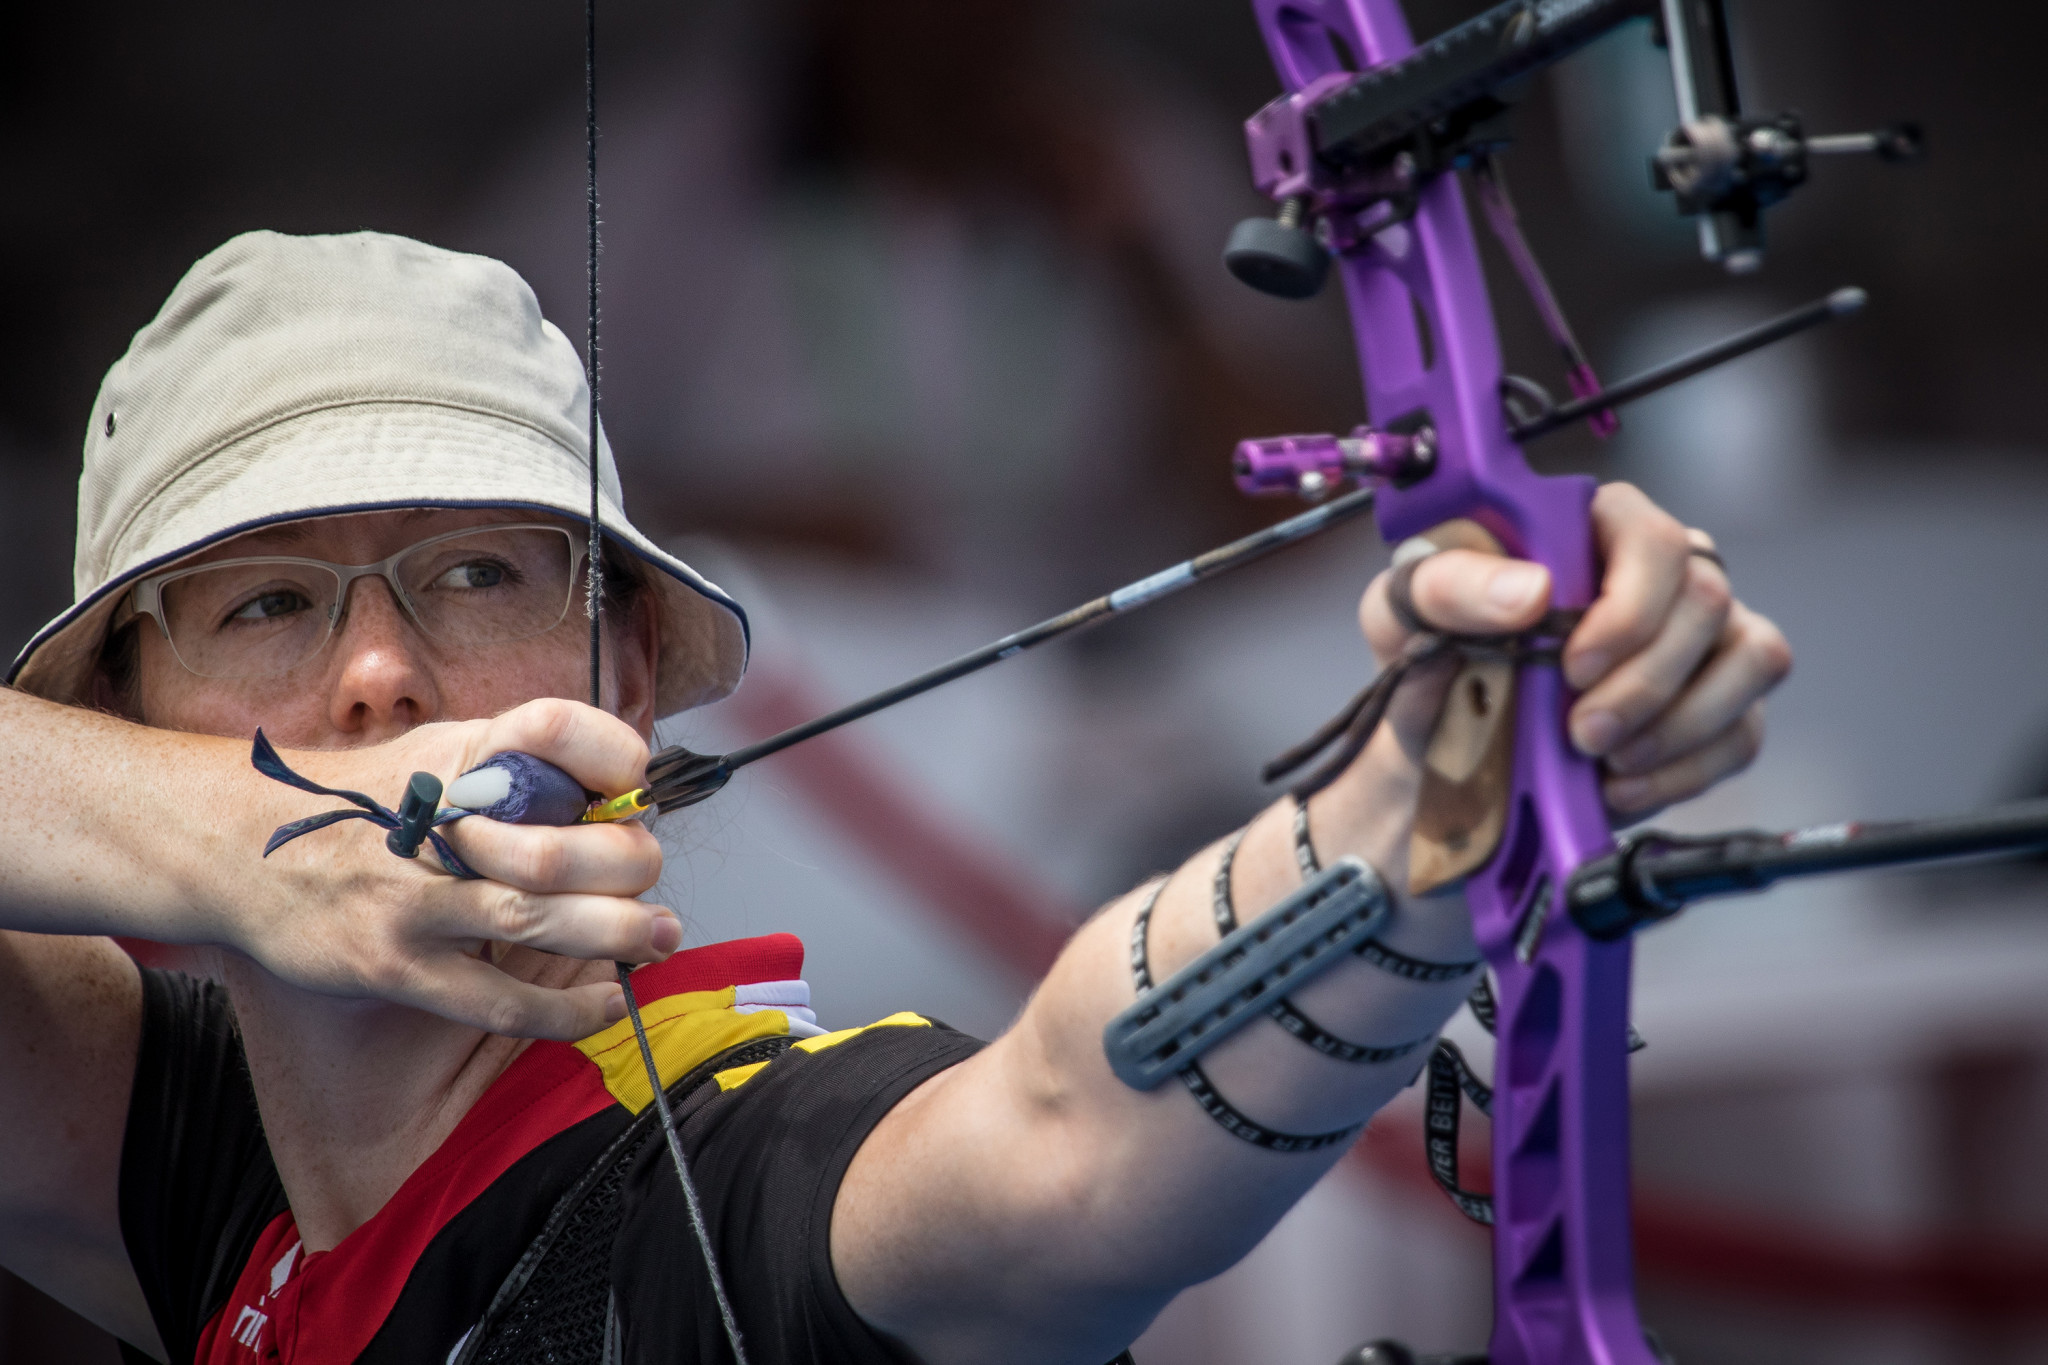 Unruh reaches home final at Archery World Cup in Berlin